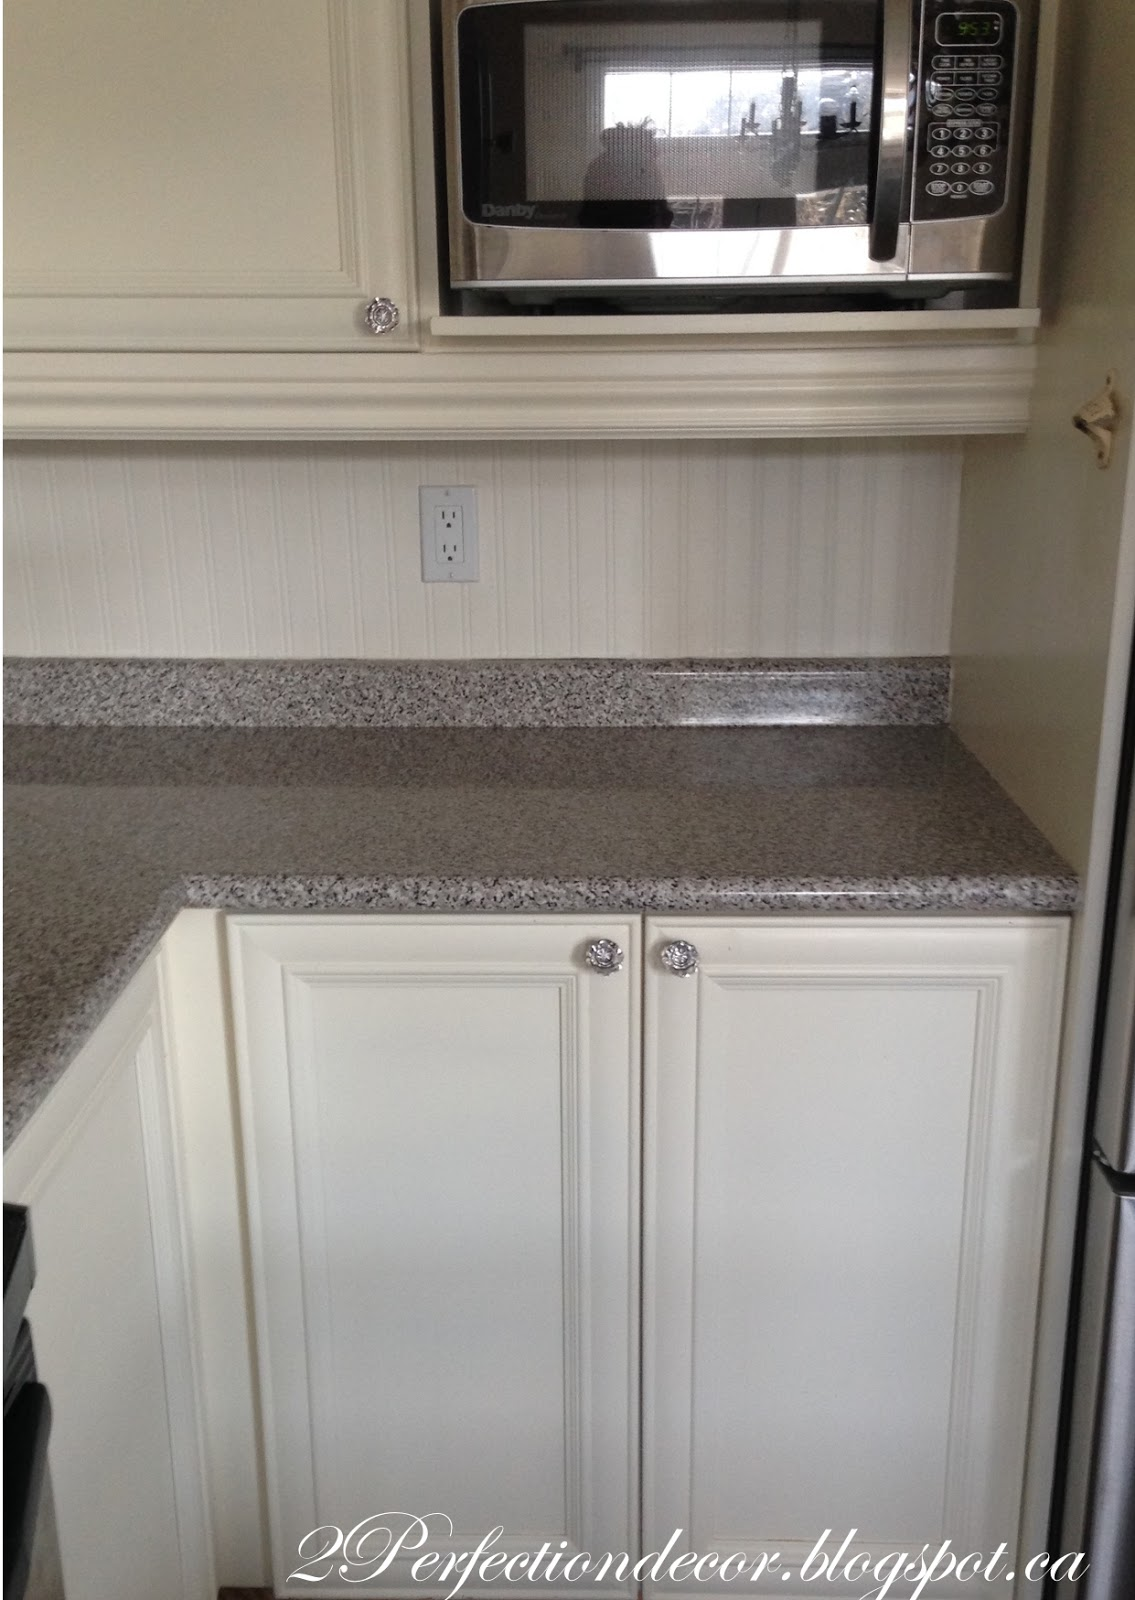 ... Granite Is The Most Whitish Granite Pictured In The Middle Right. Below  Is A Picture Of Our BEFORE Counter. It Was A Faux Granite Laminate Counter  Top.